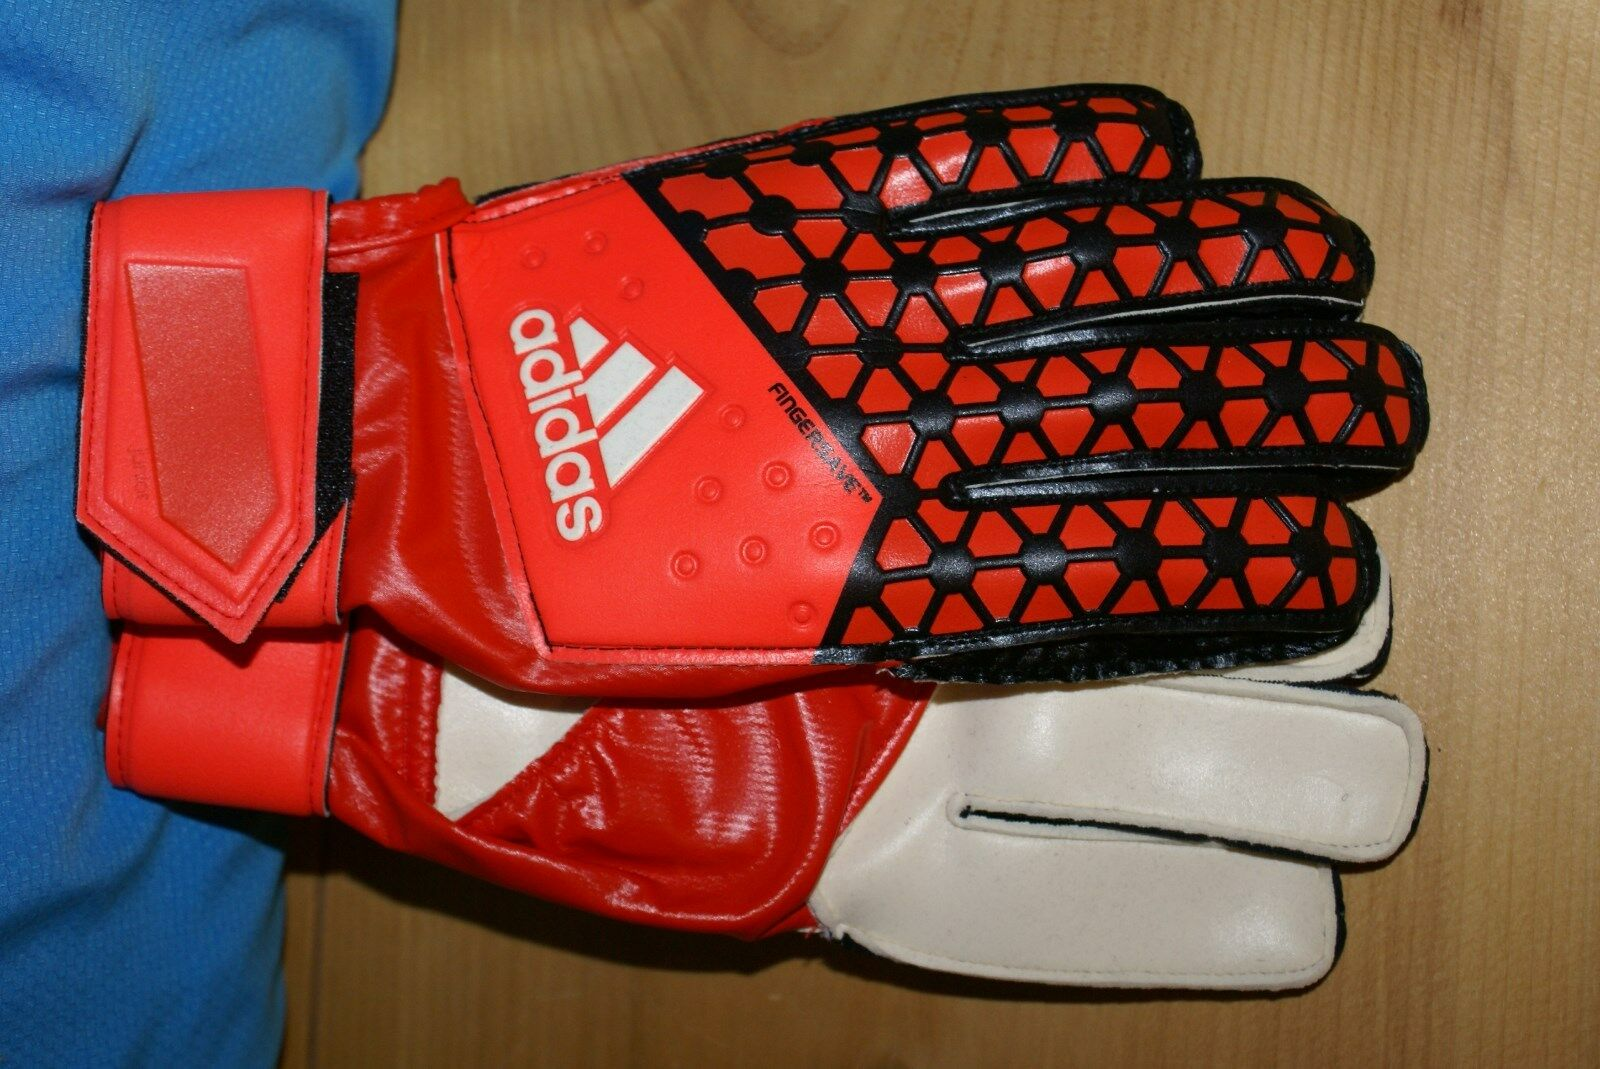 Buy   adidas Ace Fingersave Junior Goal Keeper Glove S90153 Size 5 ... 8cae8047f396